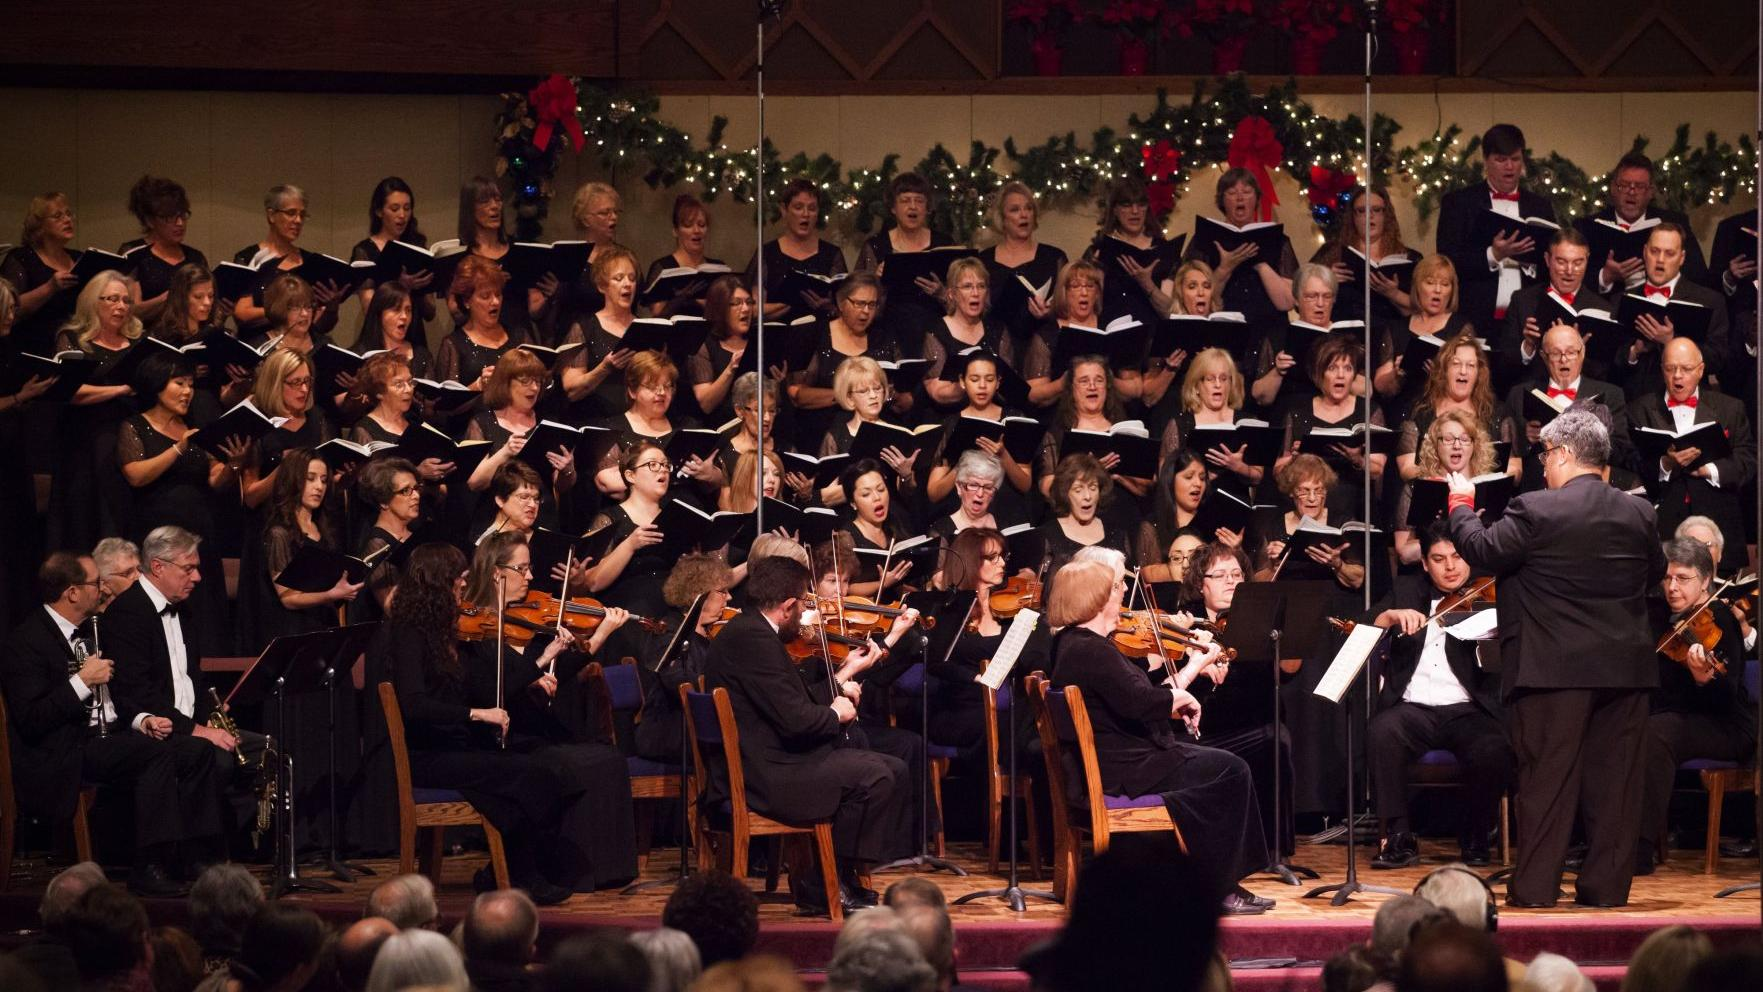 Lutheran Chorale Christmas 2020 Kern County Master Chorale kicks off season with salute to veterans | Music